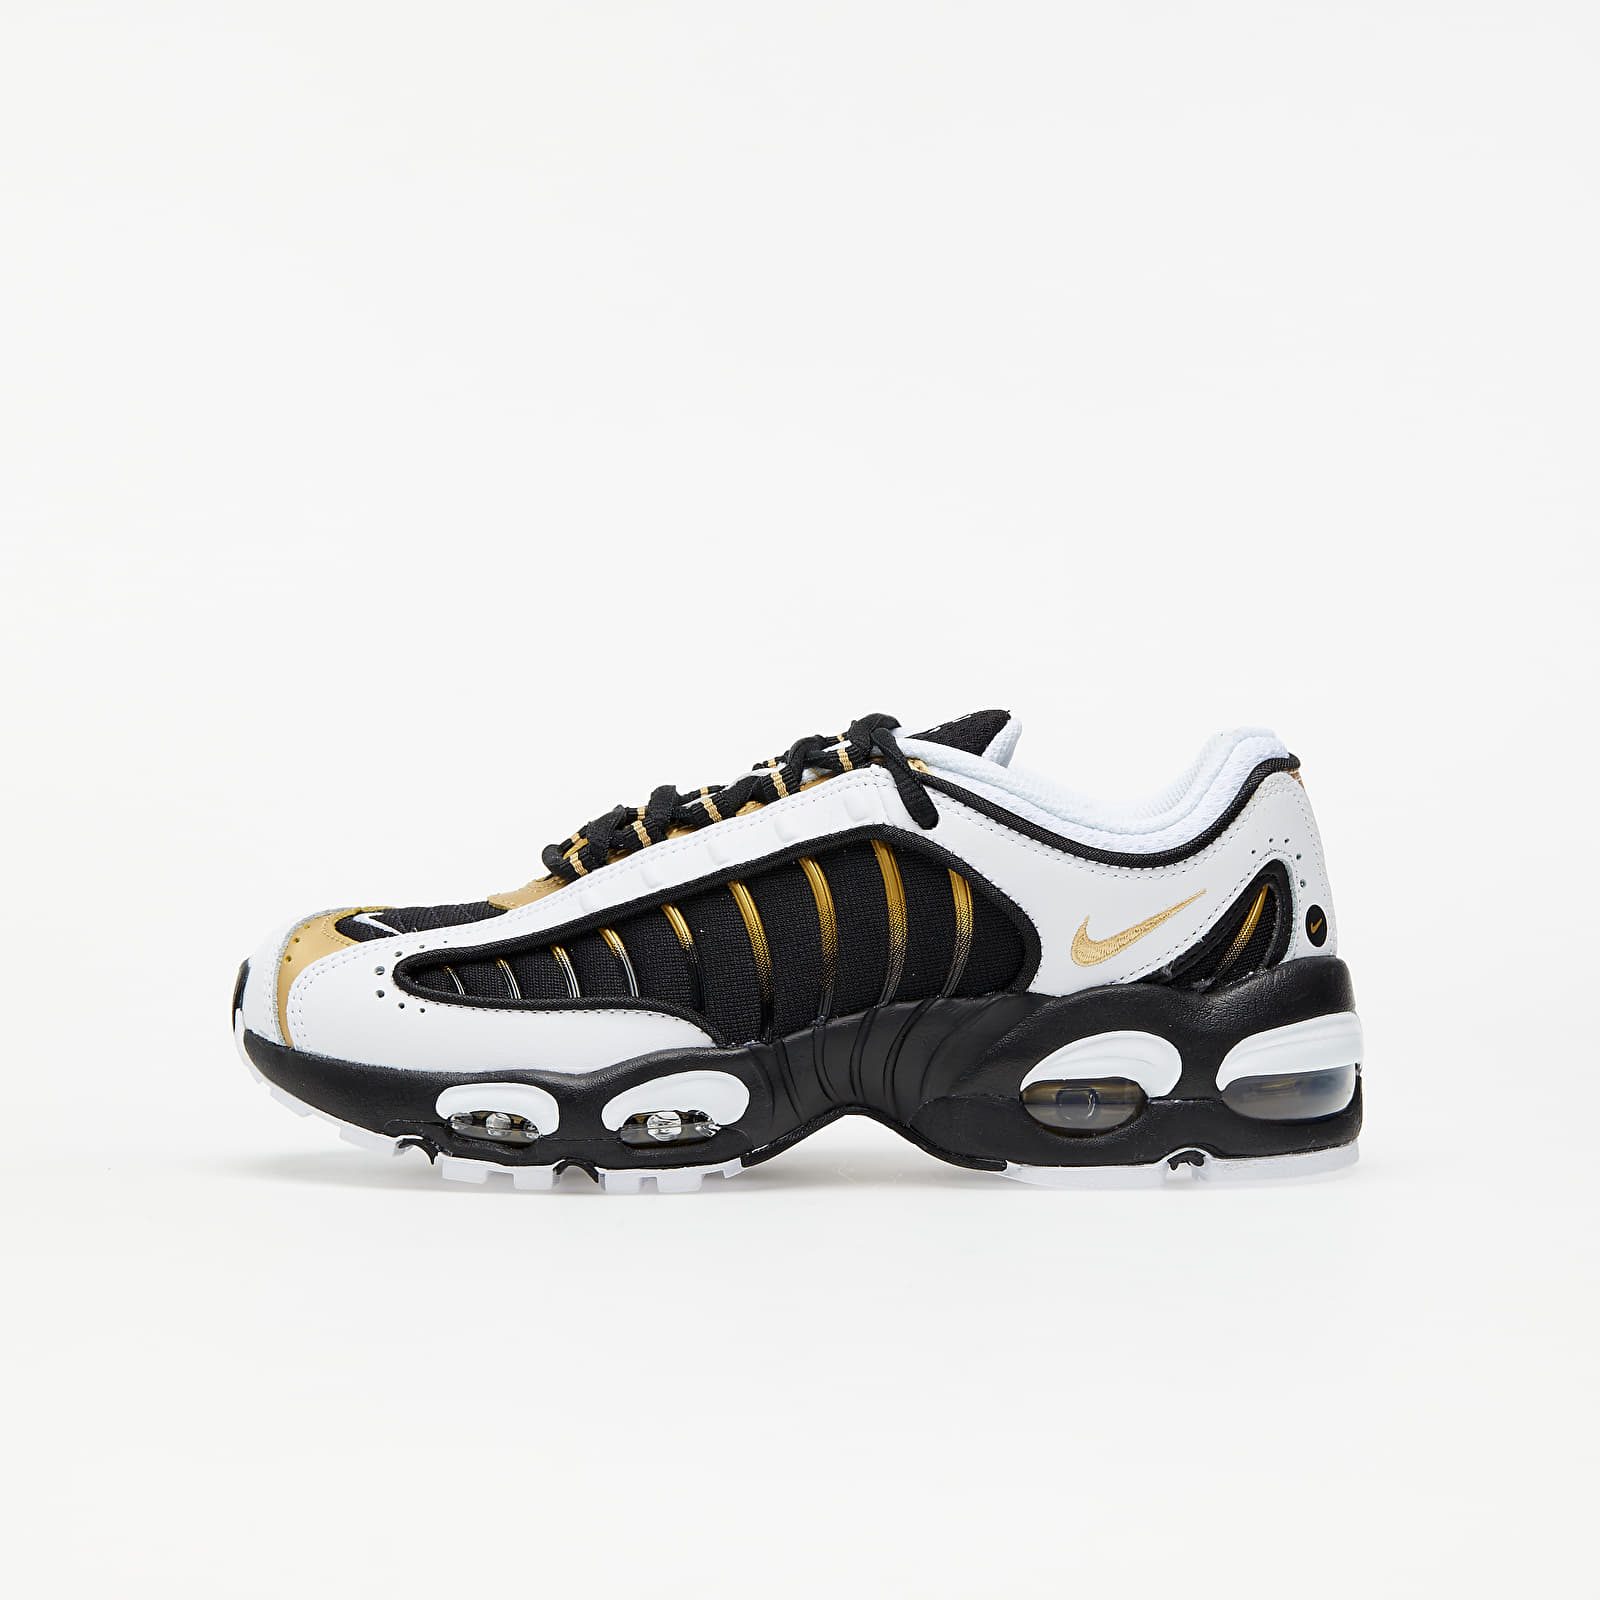 Zapatillas mujer Nike Air Max Tailwind IV GS Black/ Metallic Gold-White